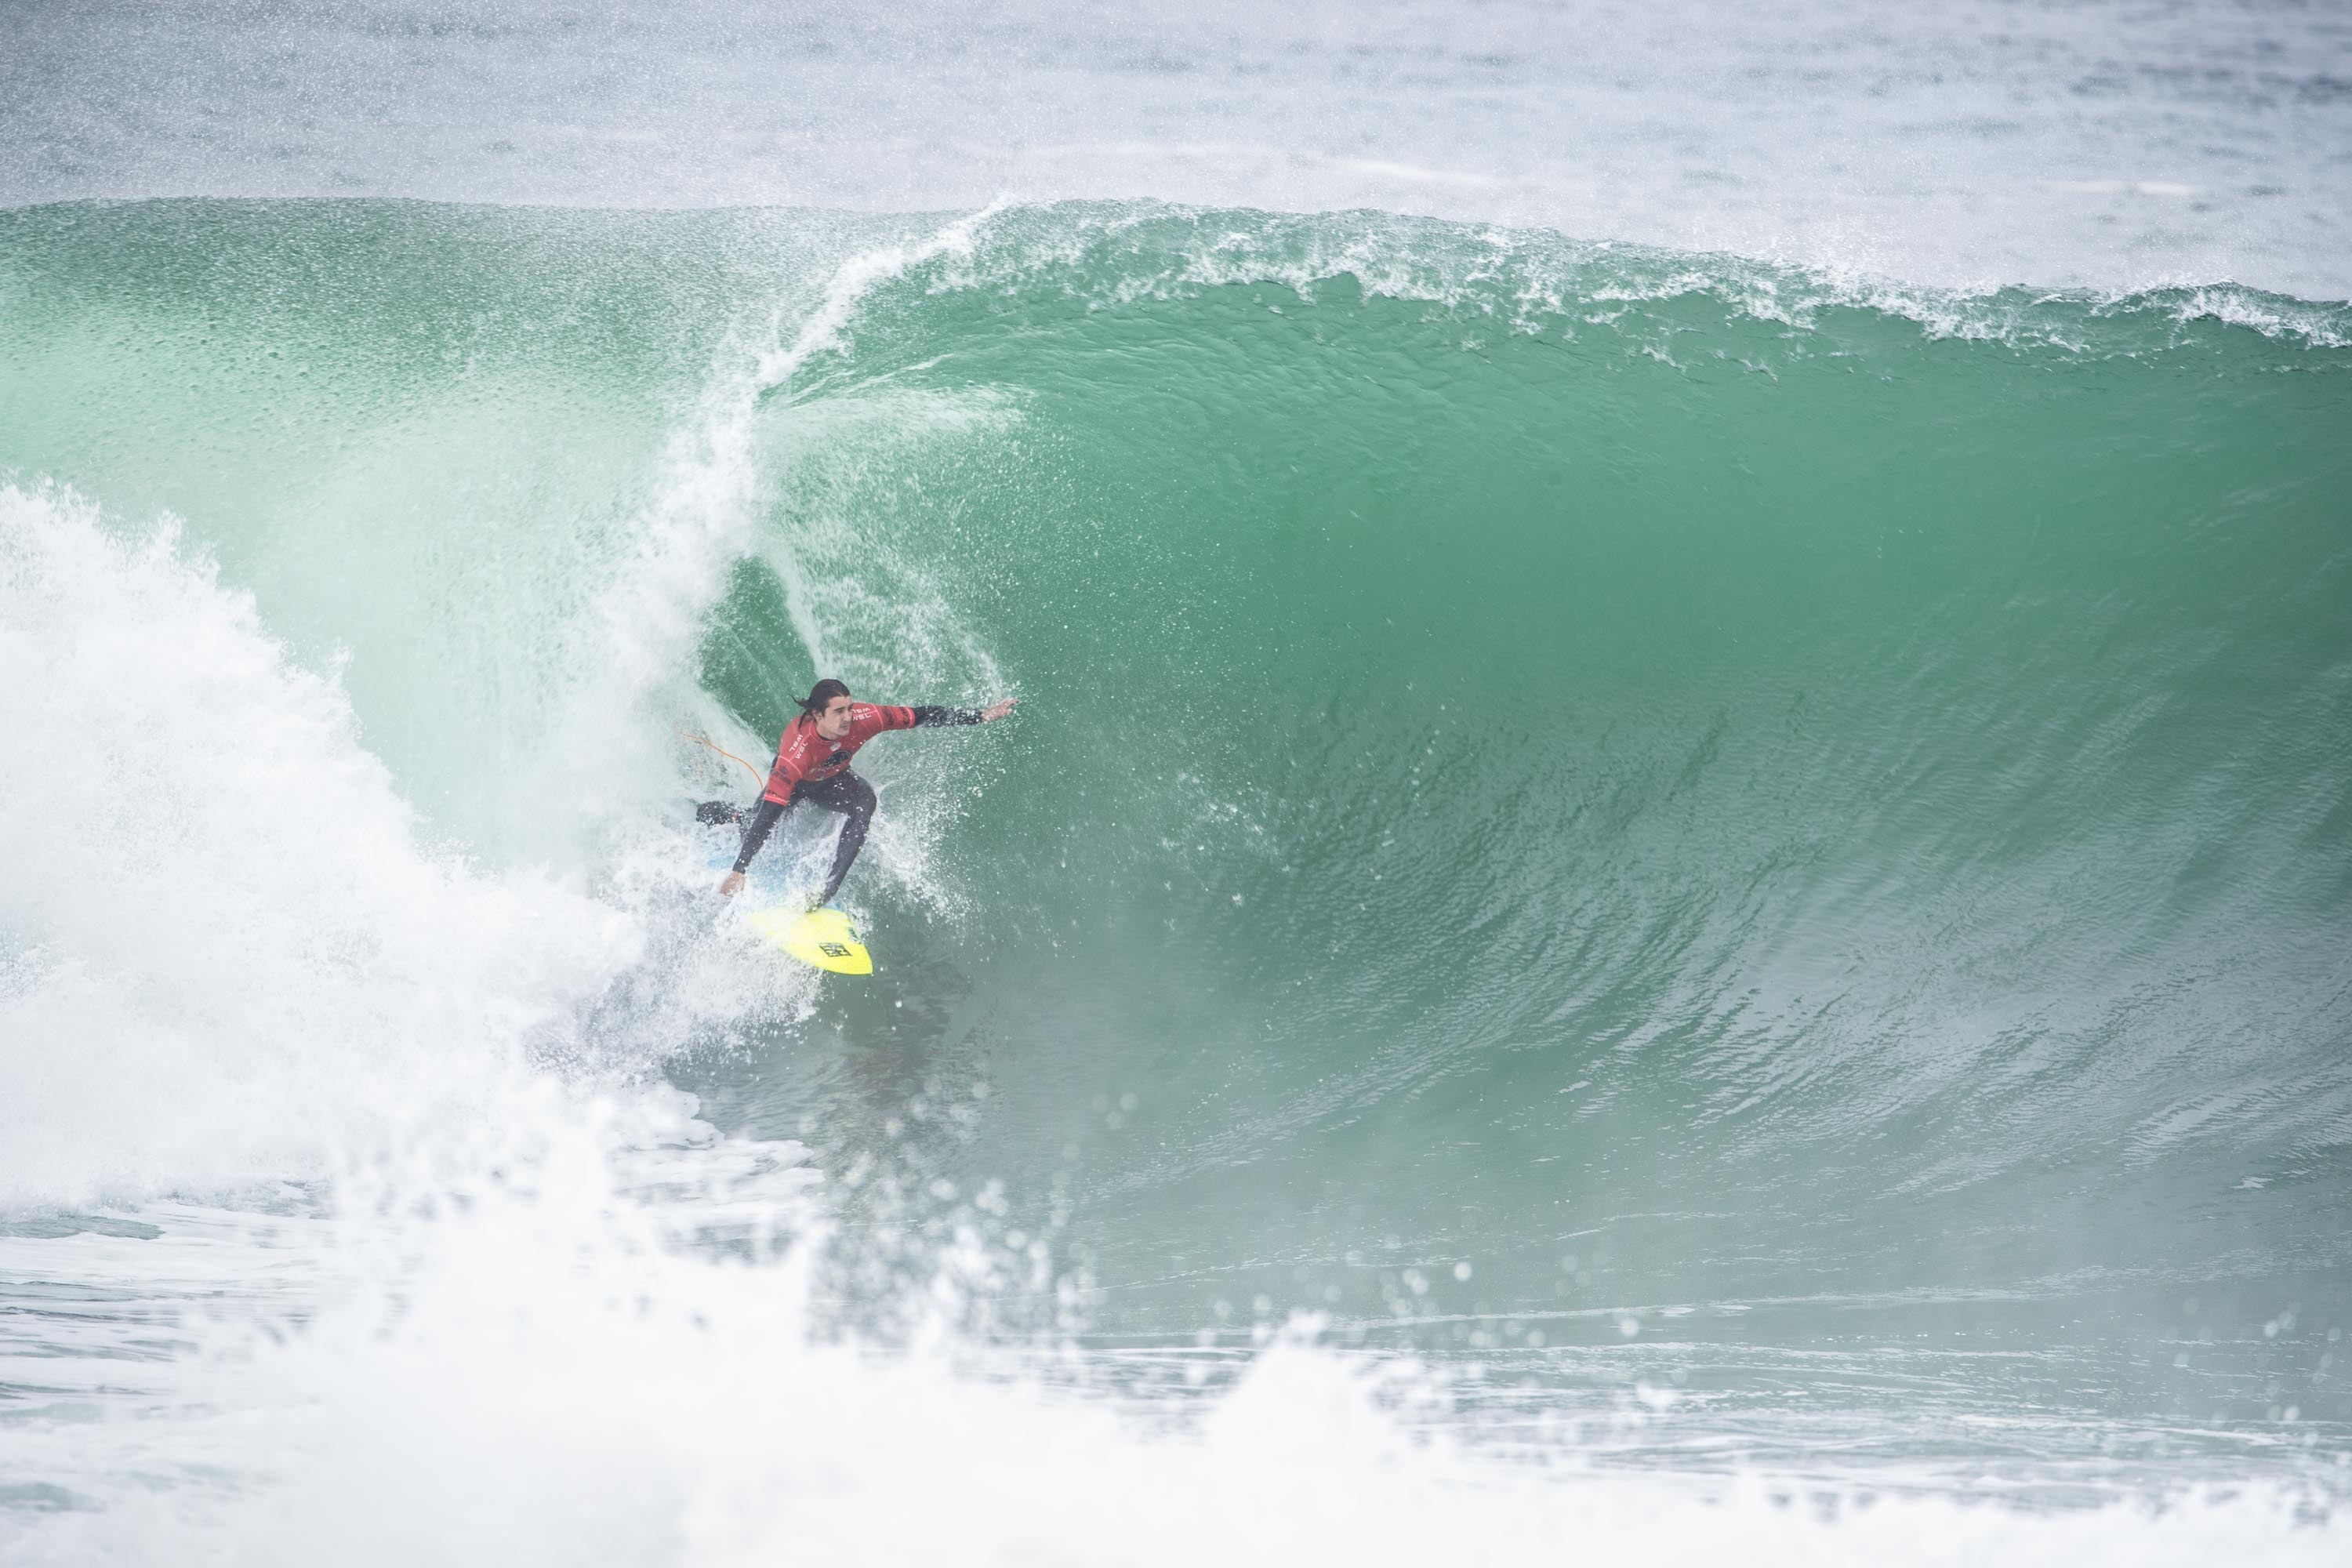 Ty Watson - Maui and Sons Arica Pro Tour